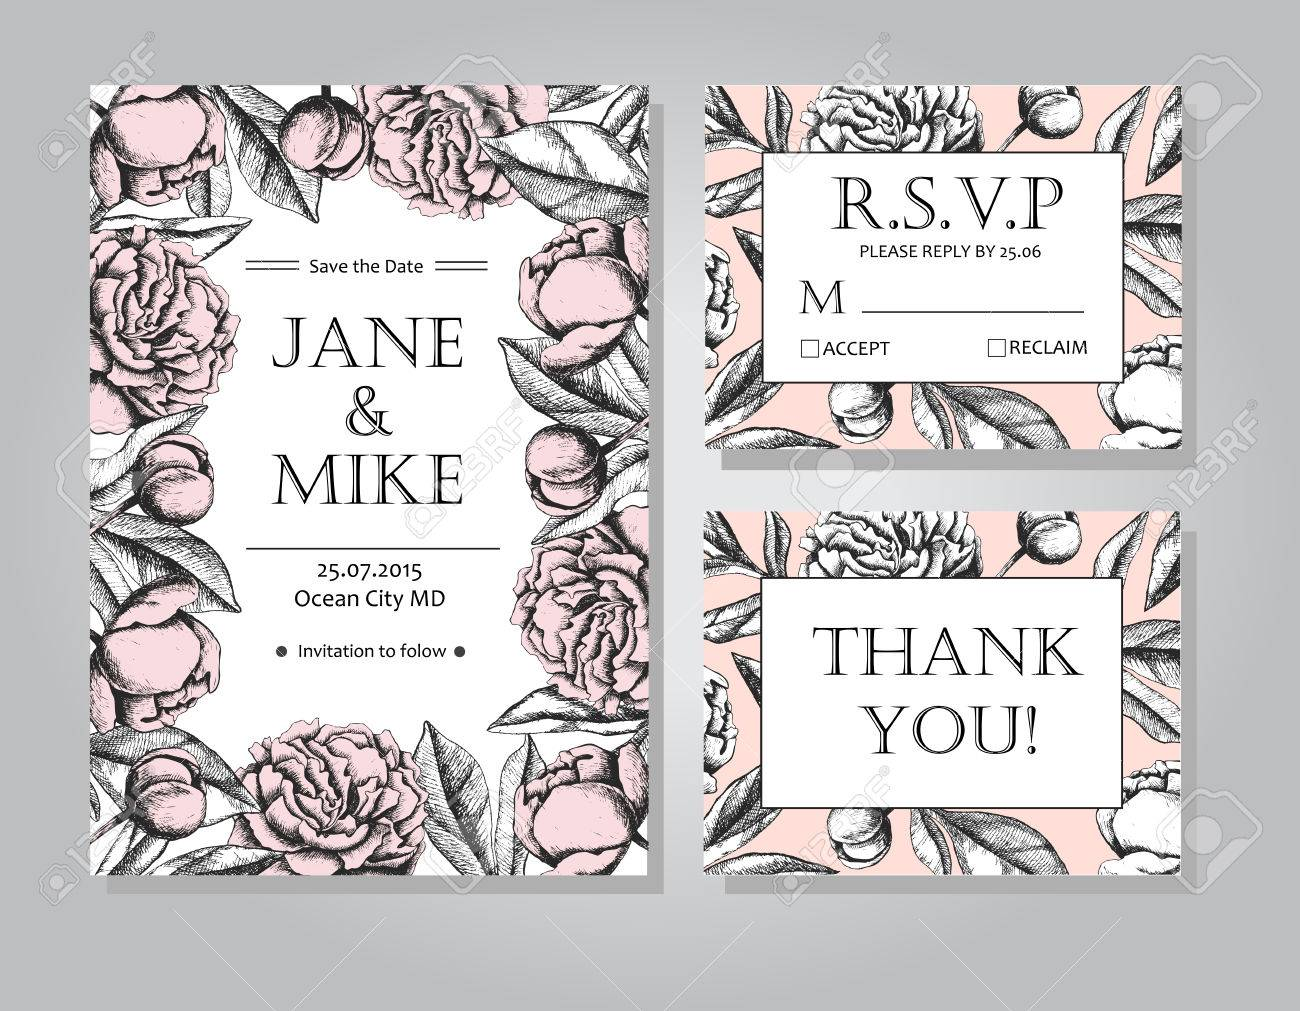 Vintage Elegant Wedding Invitation Card Template Collection With ...